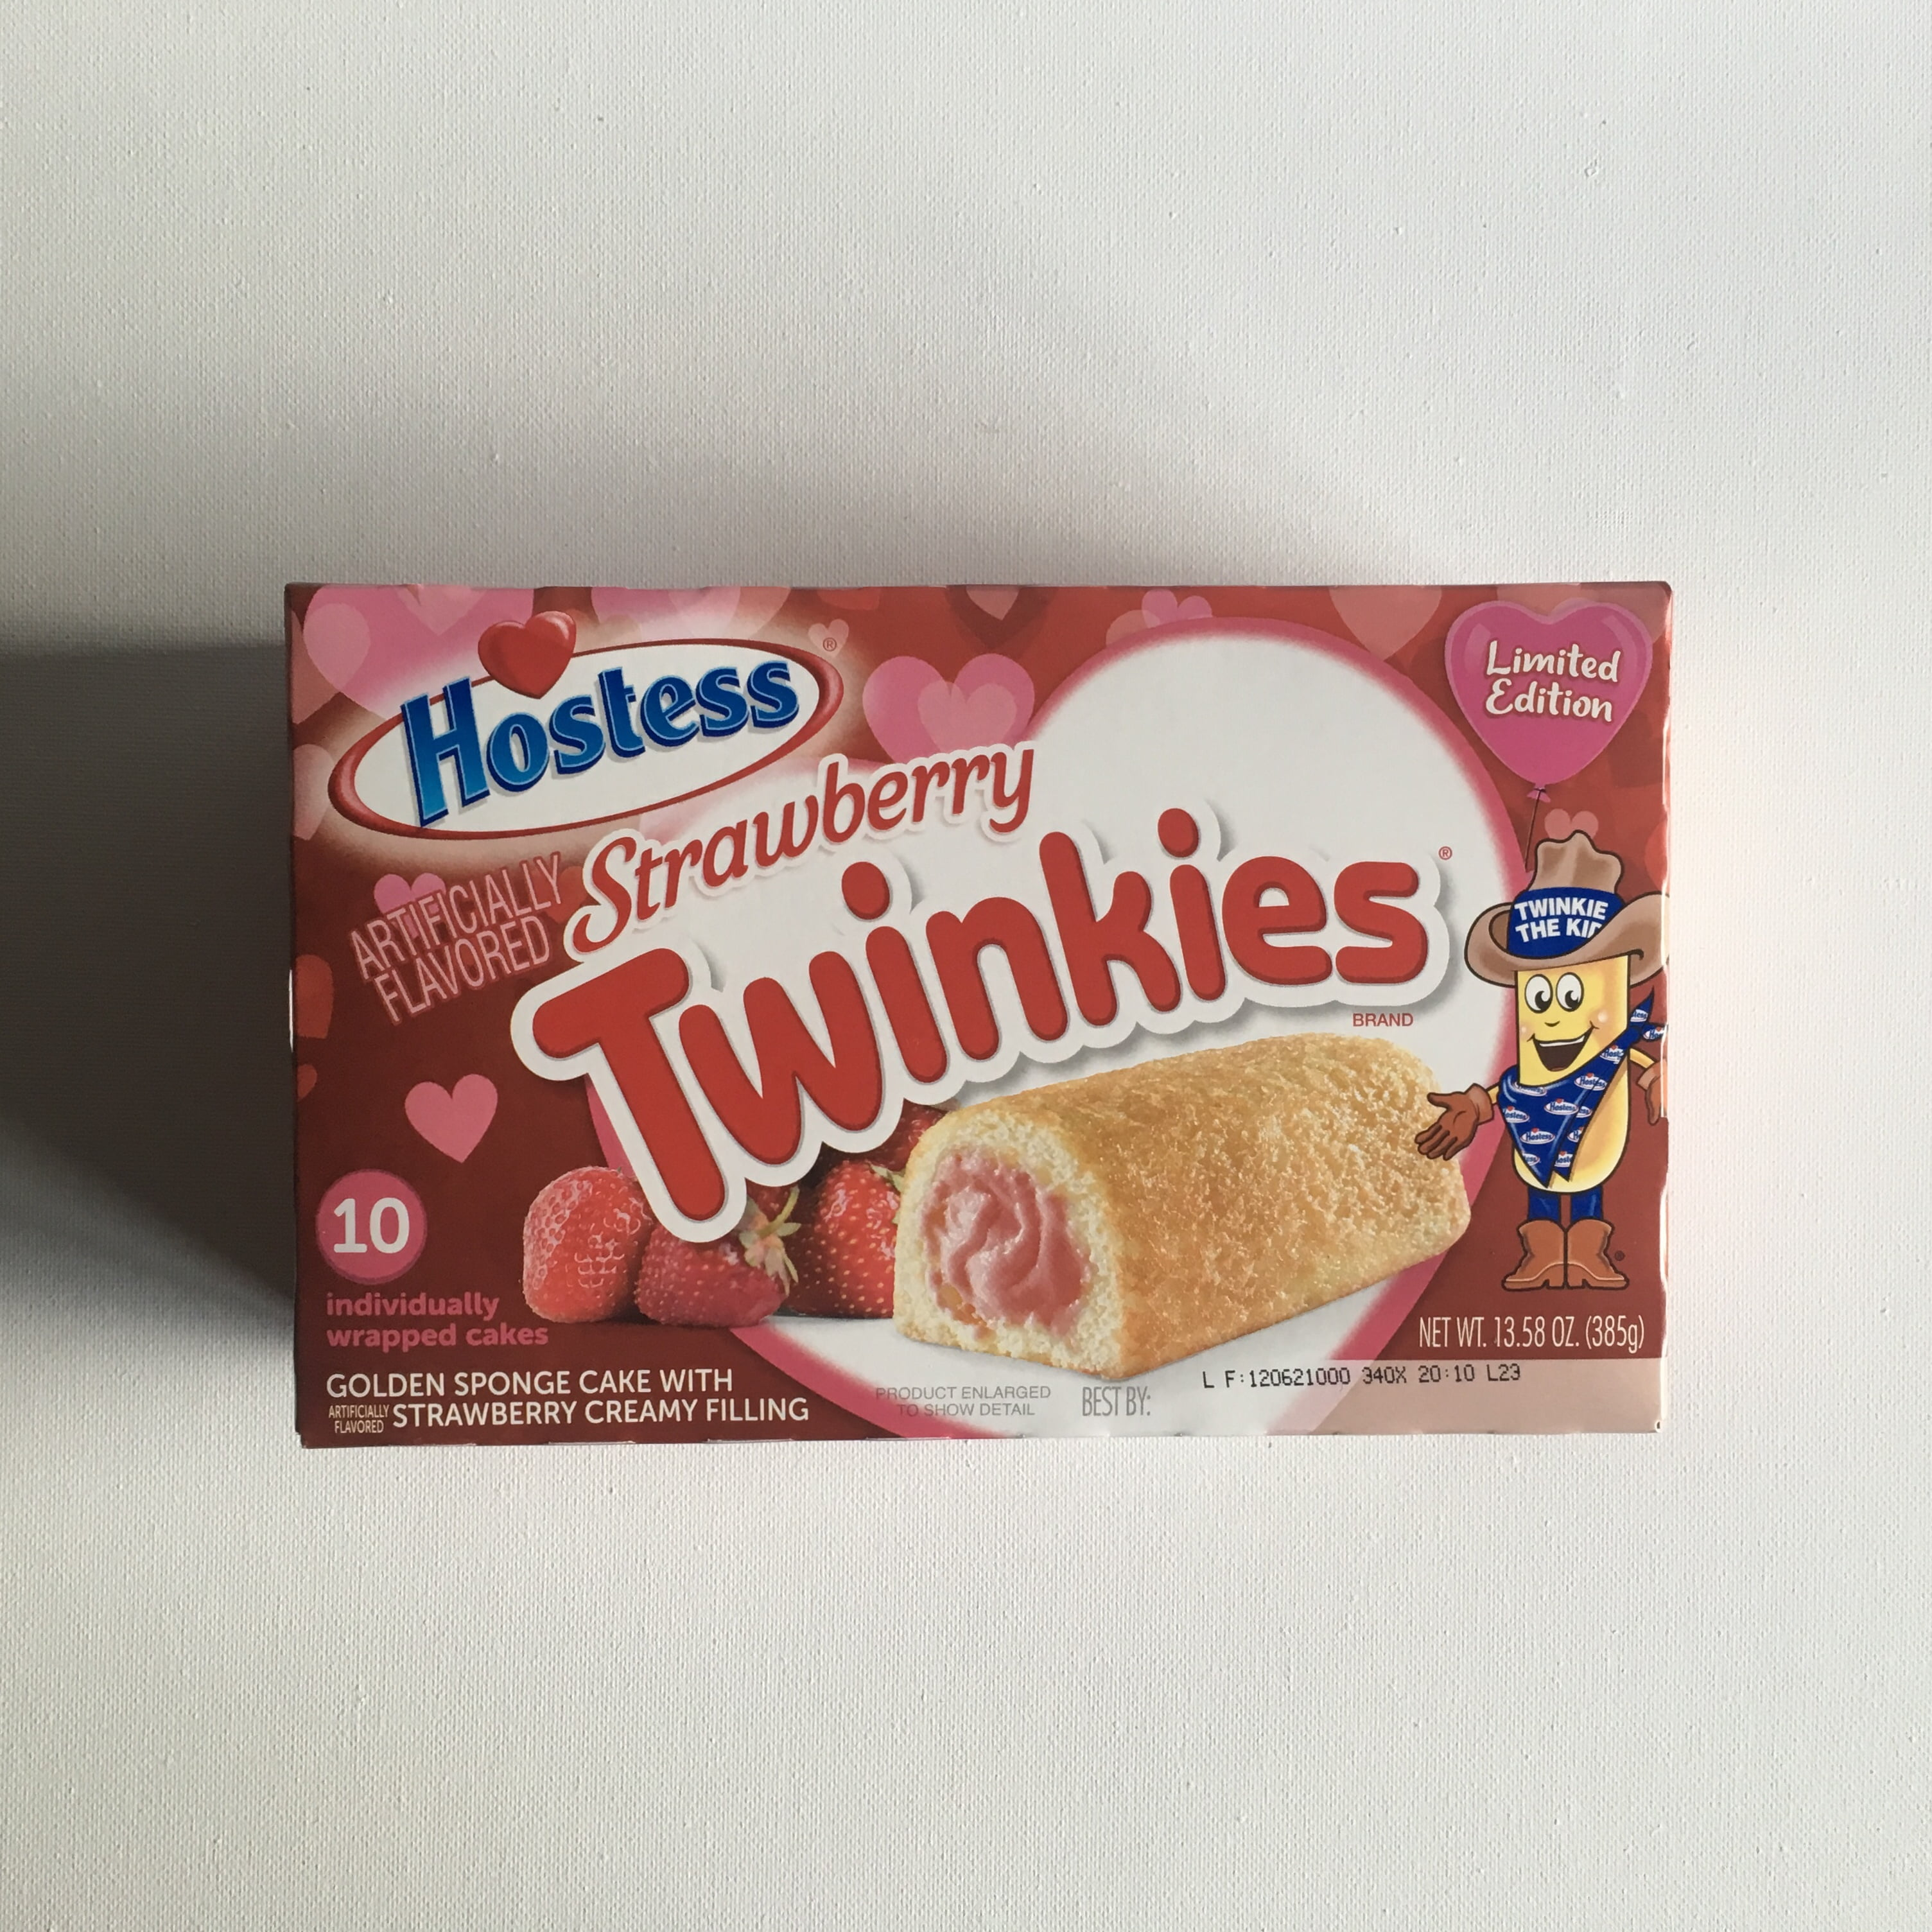 Hostess Valentines Twinkies Strawberry (10 pack) from Auntie Ammies candy shop